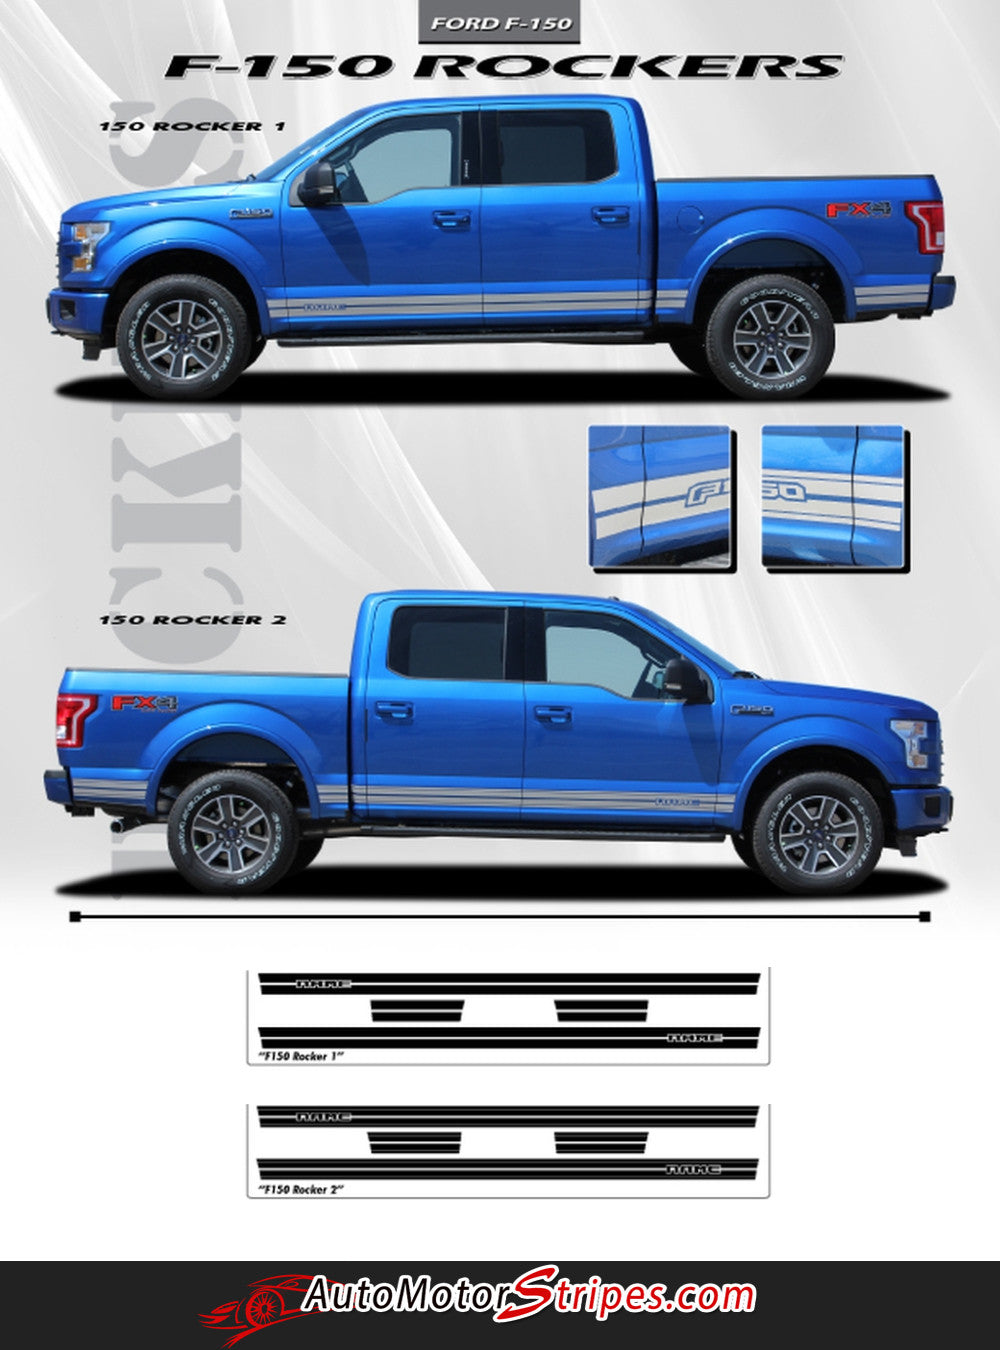 2015 2019 ford f 150 rocker one lower rocker stripes vinyl decal 3m graphics